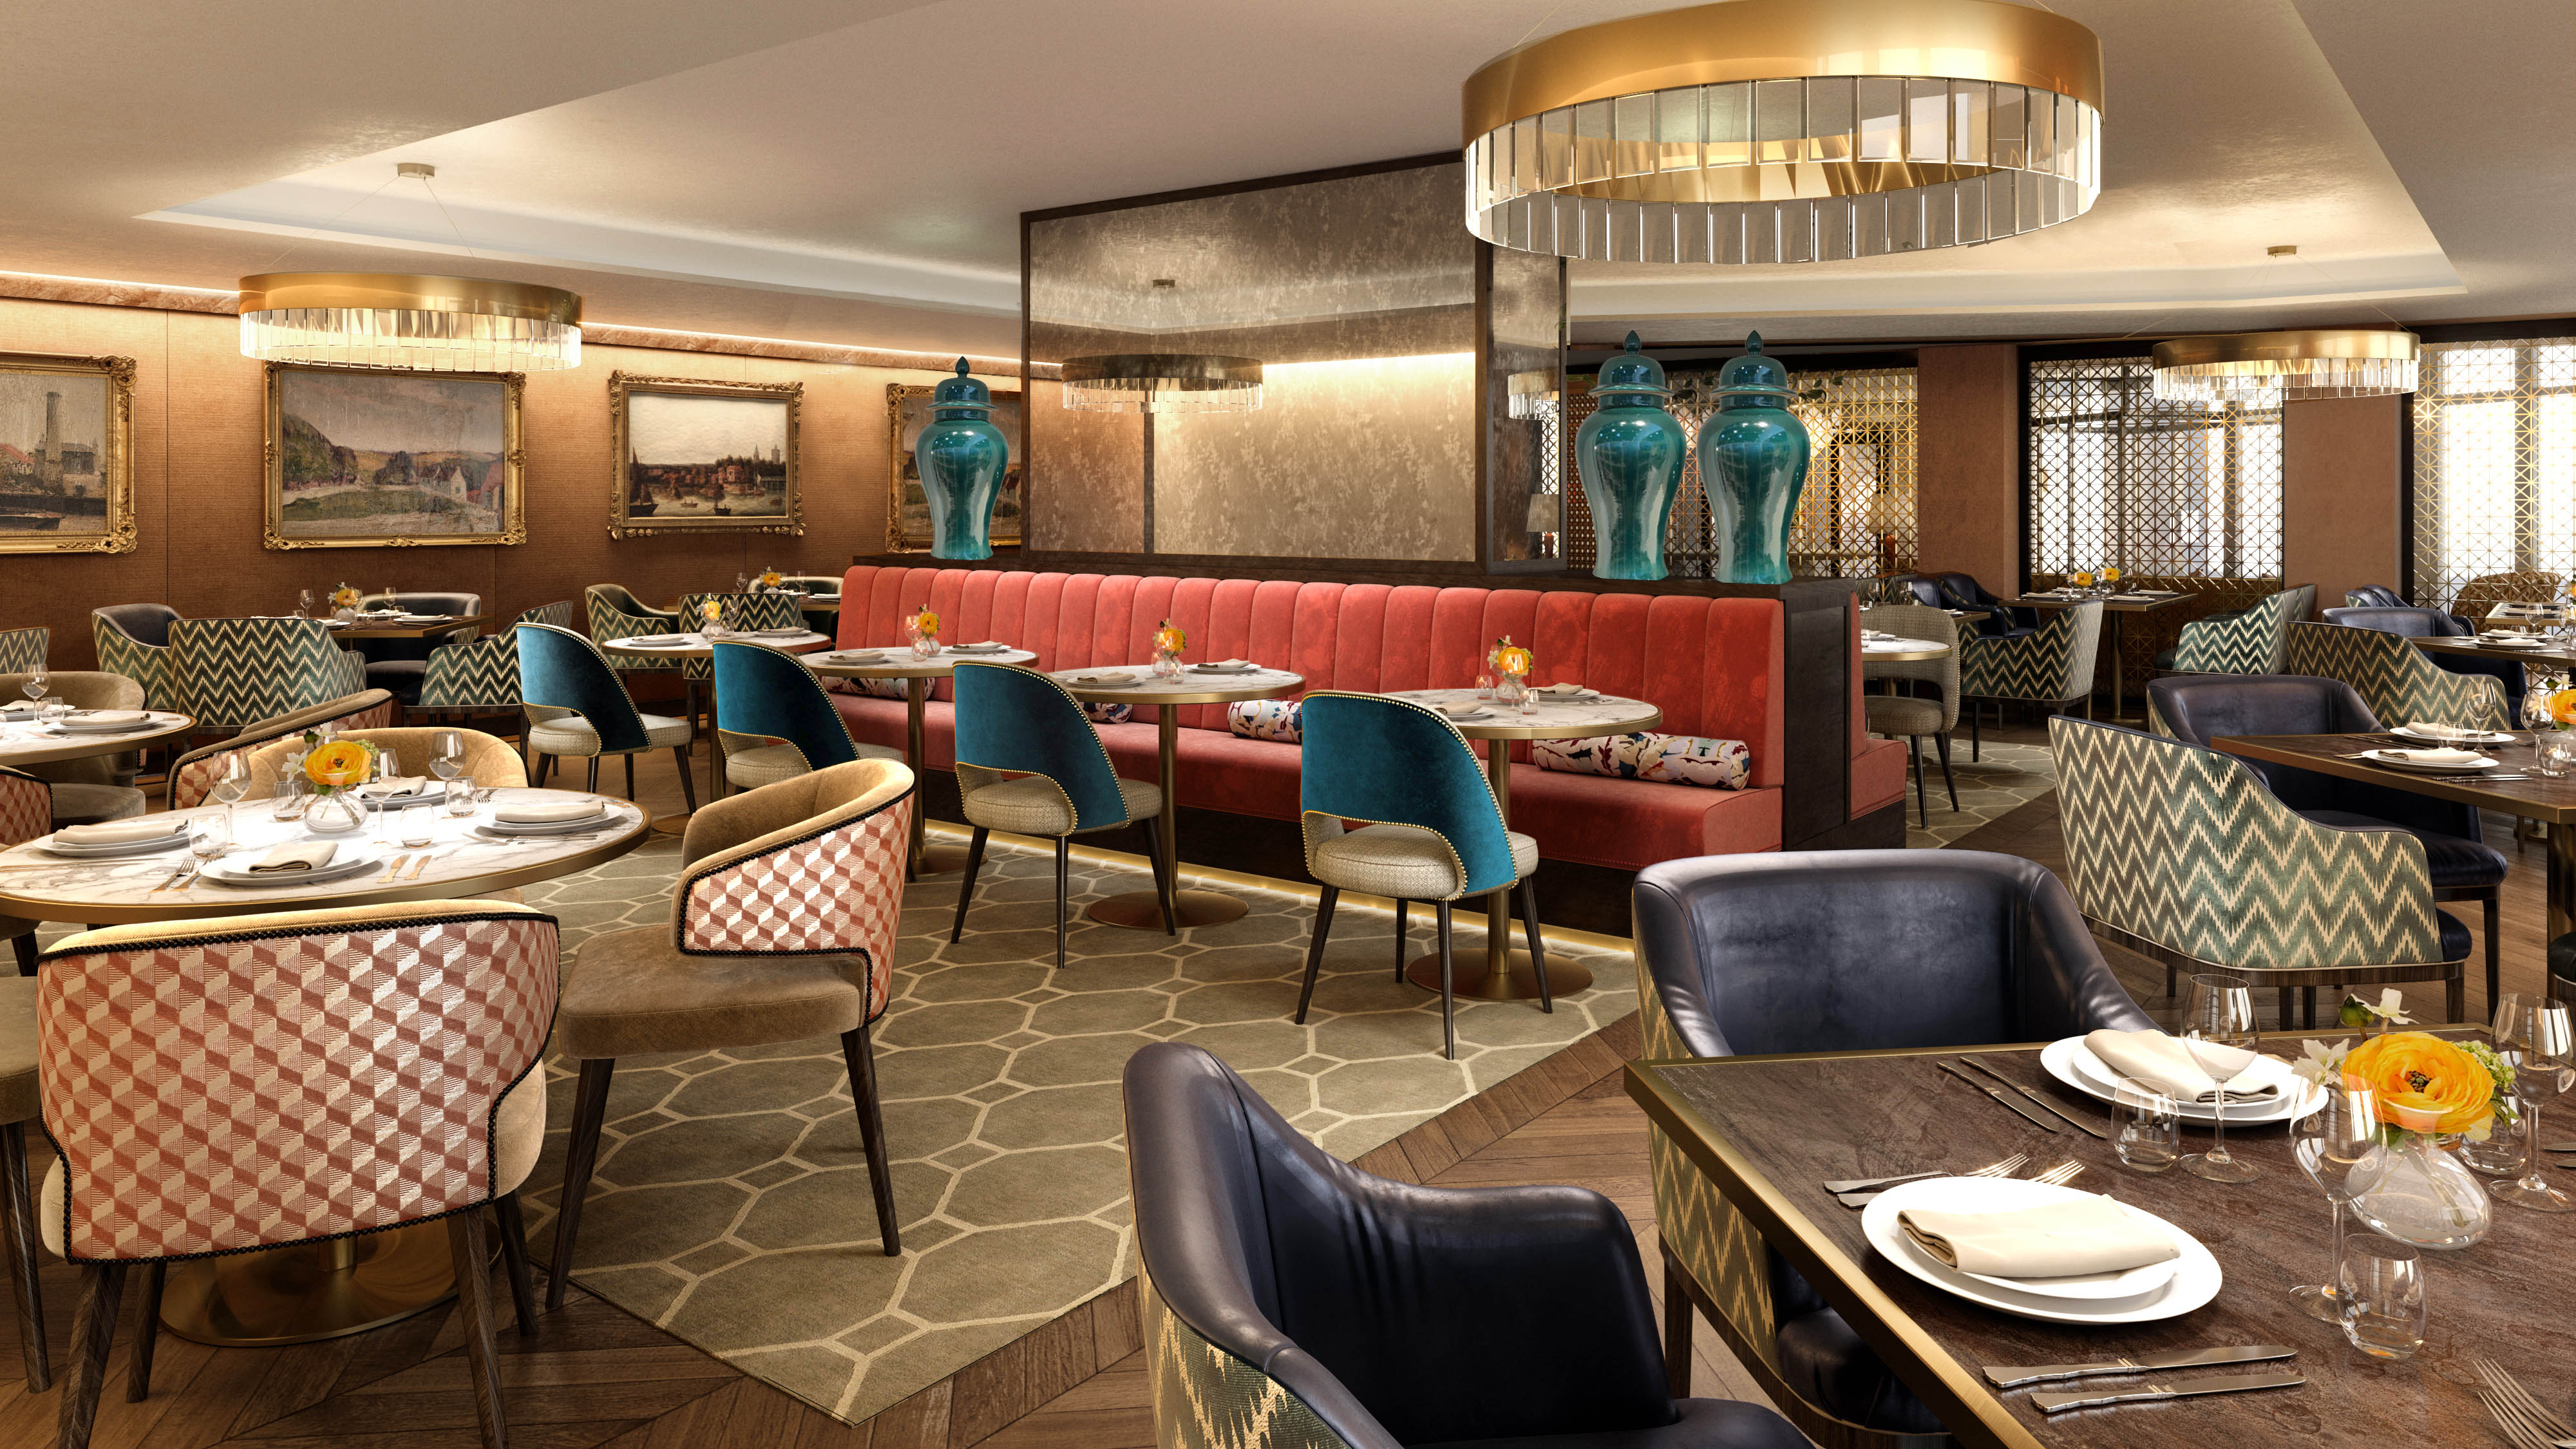 Nightingale Interiors amended Restaurant 01.05.19